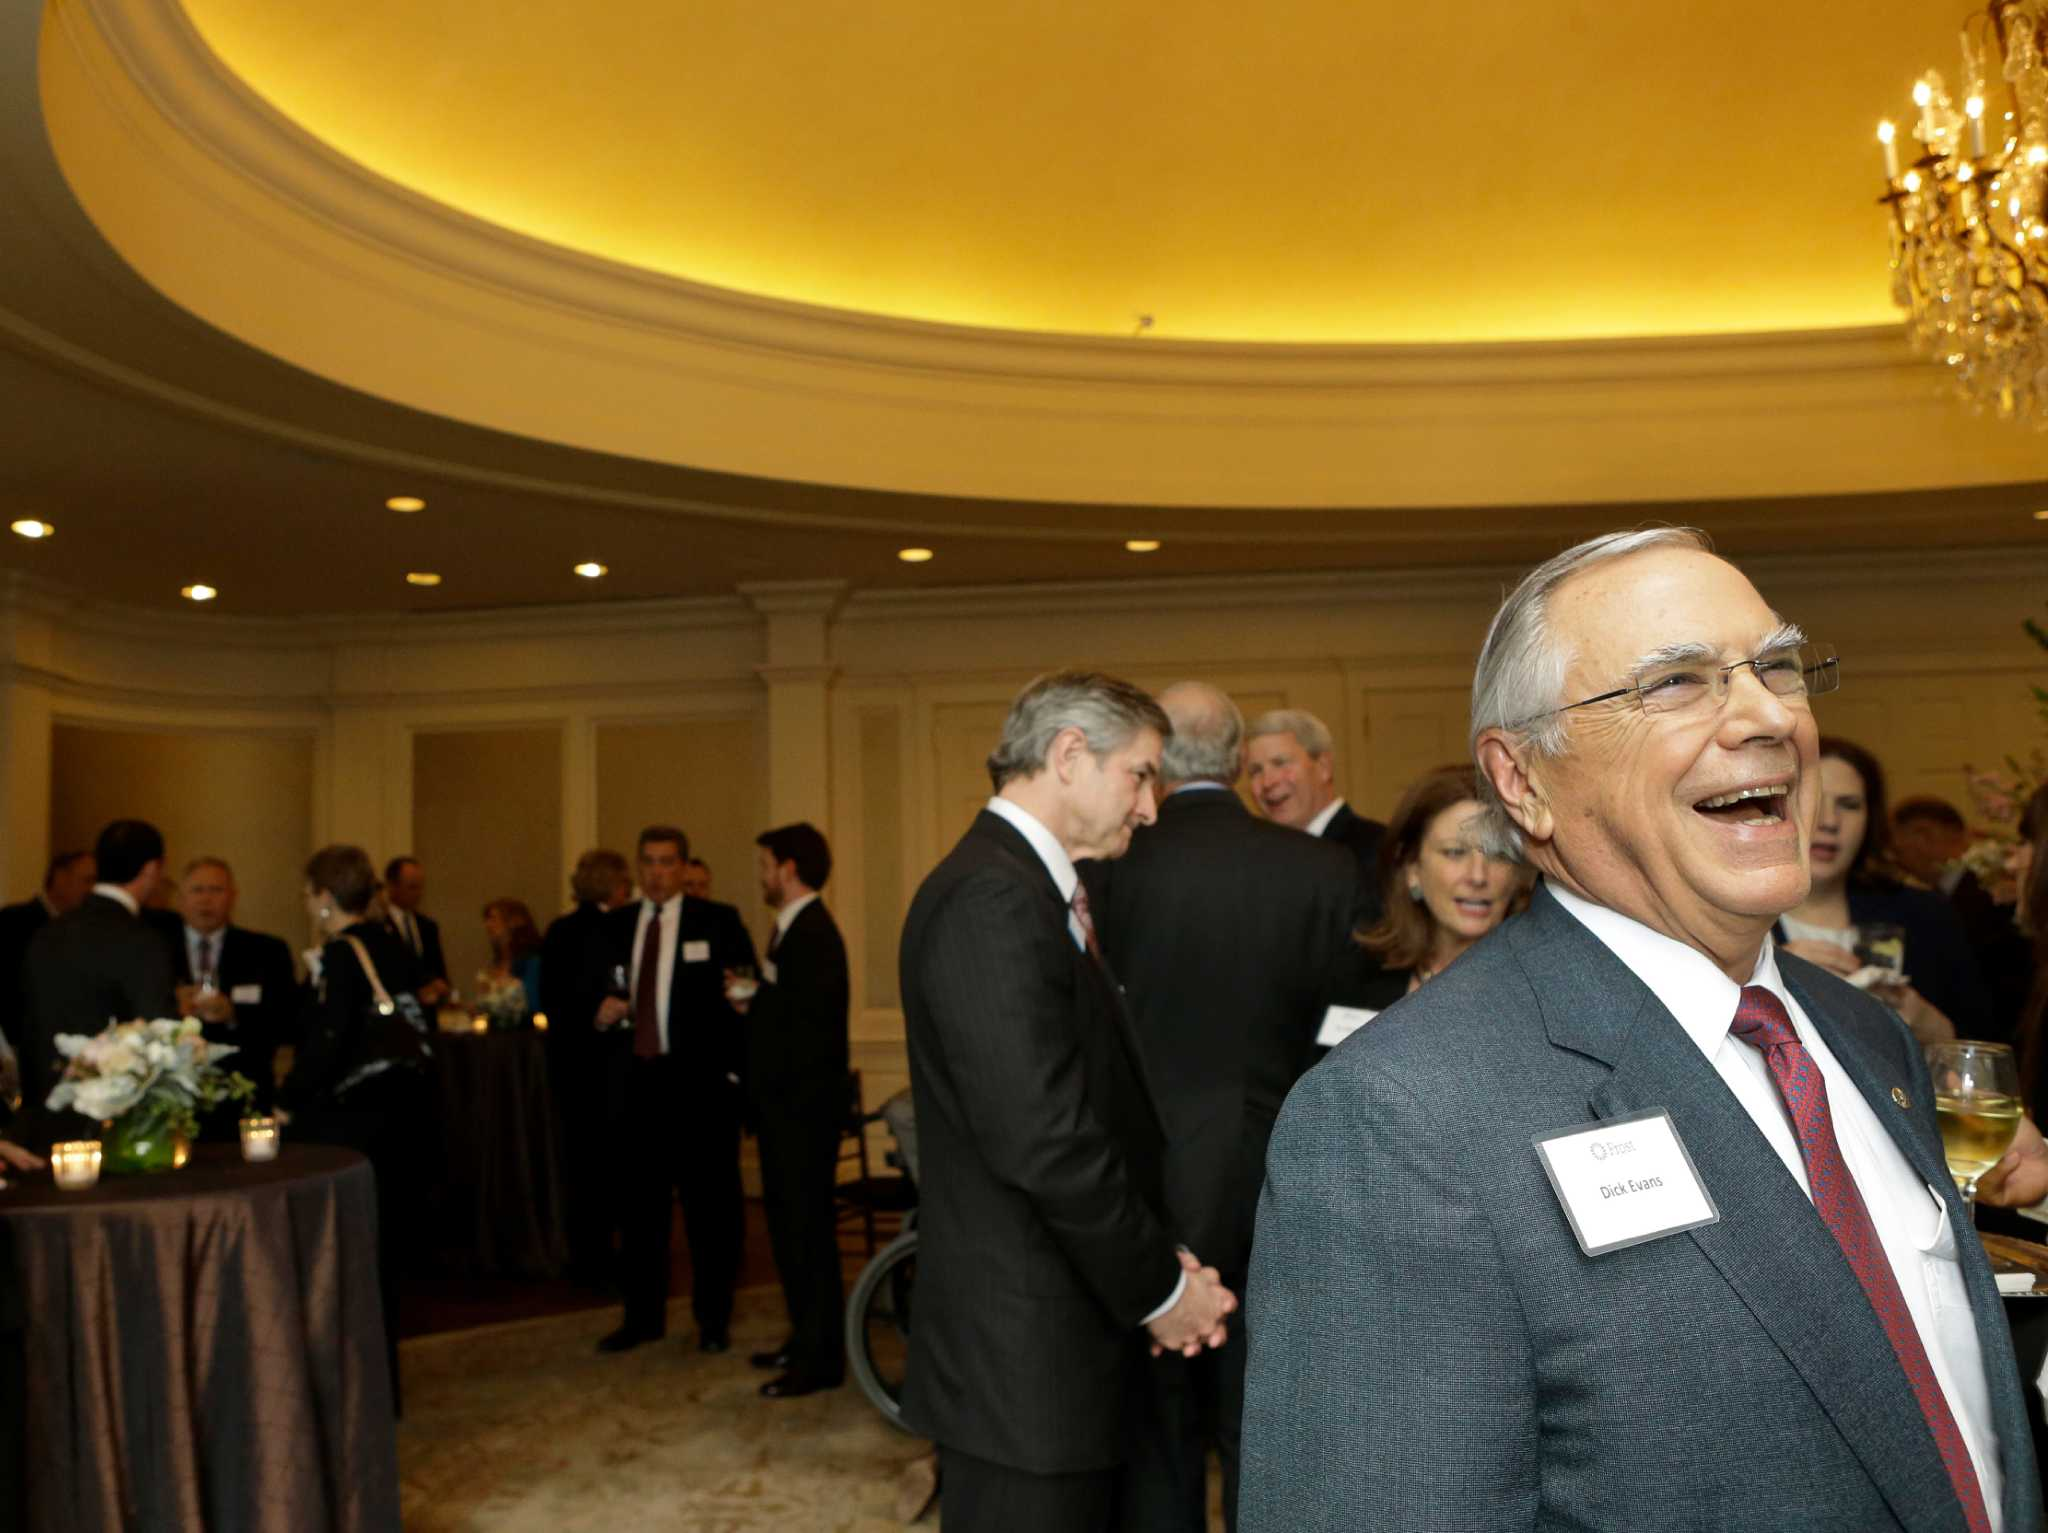 Cullenfrosts evans retires an old fashioned banker after 45 cullenfrosts evans retires an old fashioned banker after 45 years san antonio express news buycottarizona Images